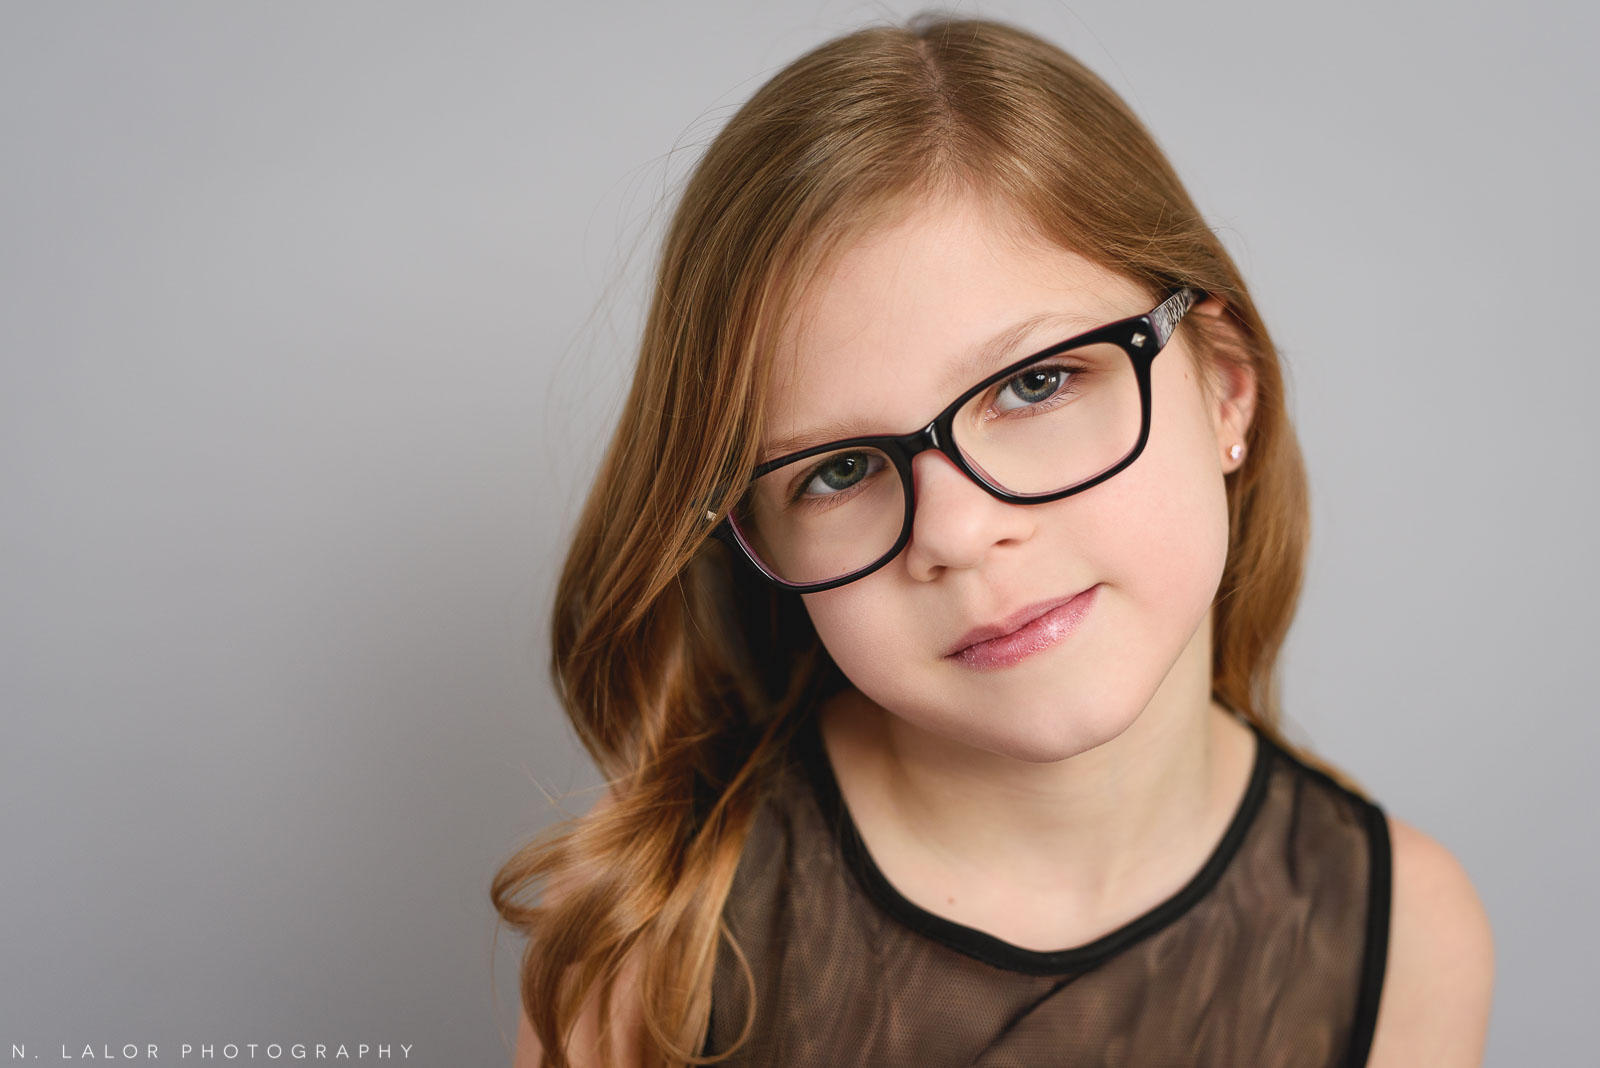 Portrait of a 9 year old girl. Tween photo session with N. Lalor Photography. Studio located in Greenwich, Connecticut.